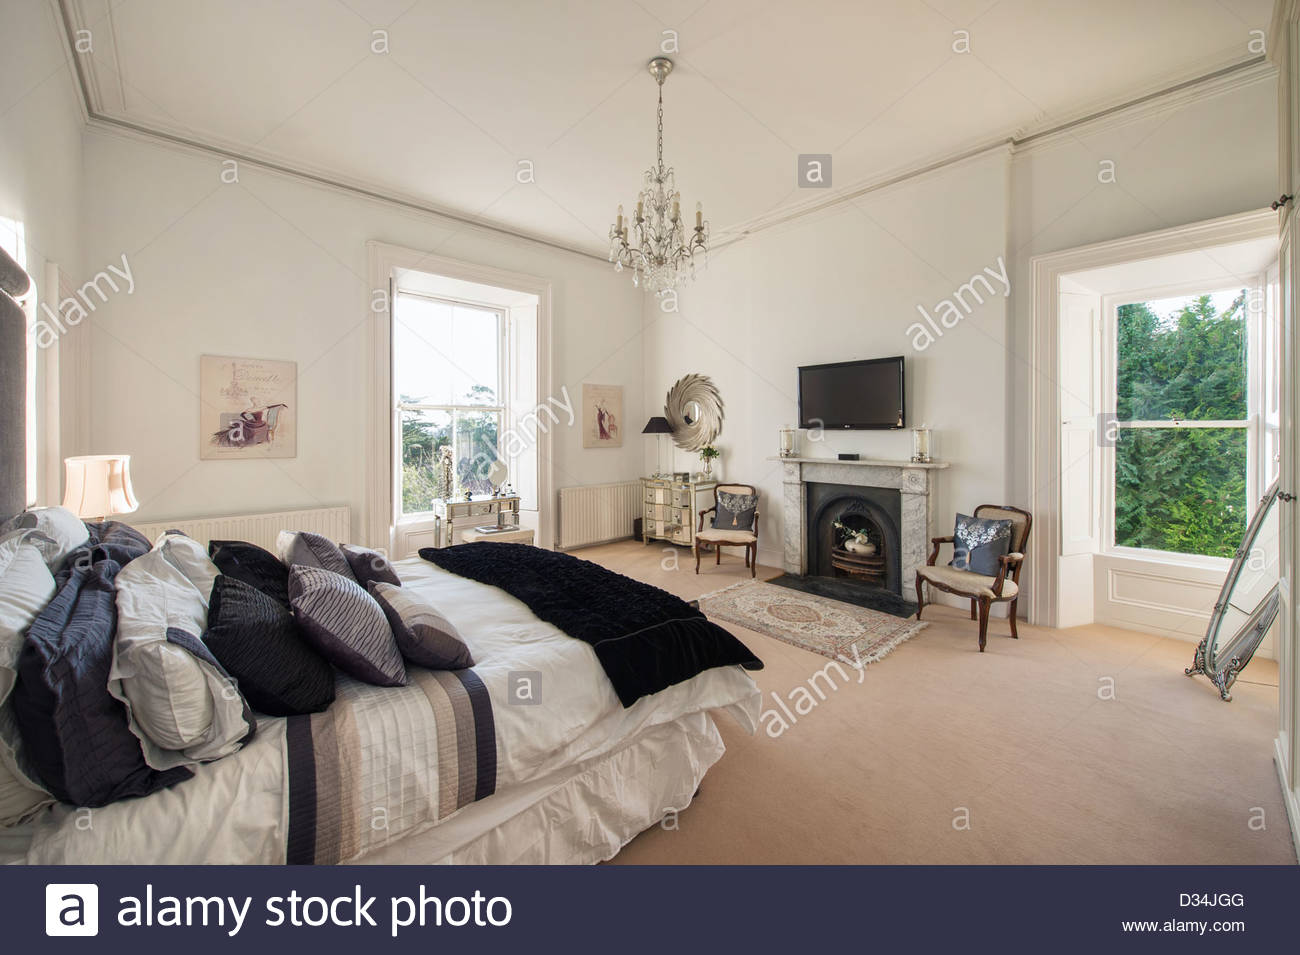 Interior space of luxury period home Stock Photo, Royalty ...